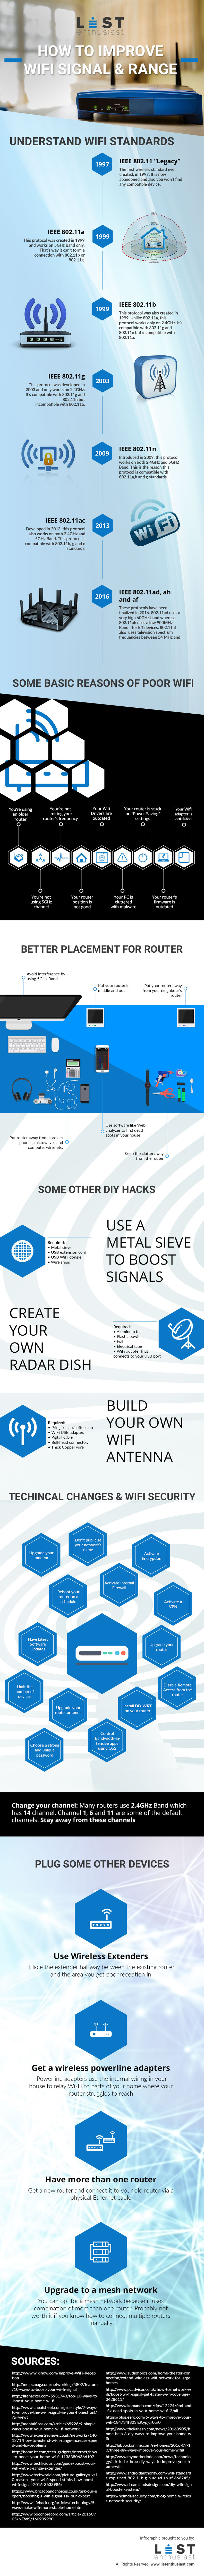 How to Improve WiFi Signal and Range